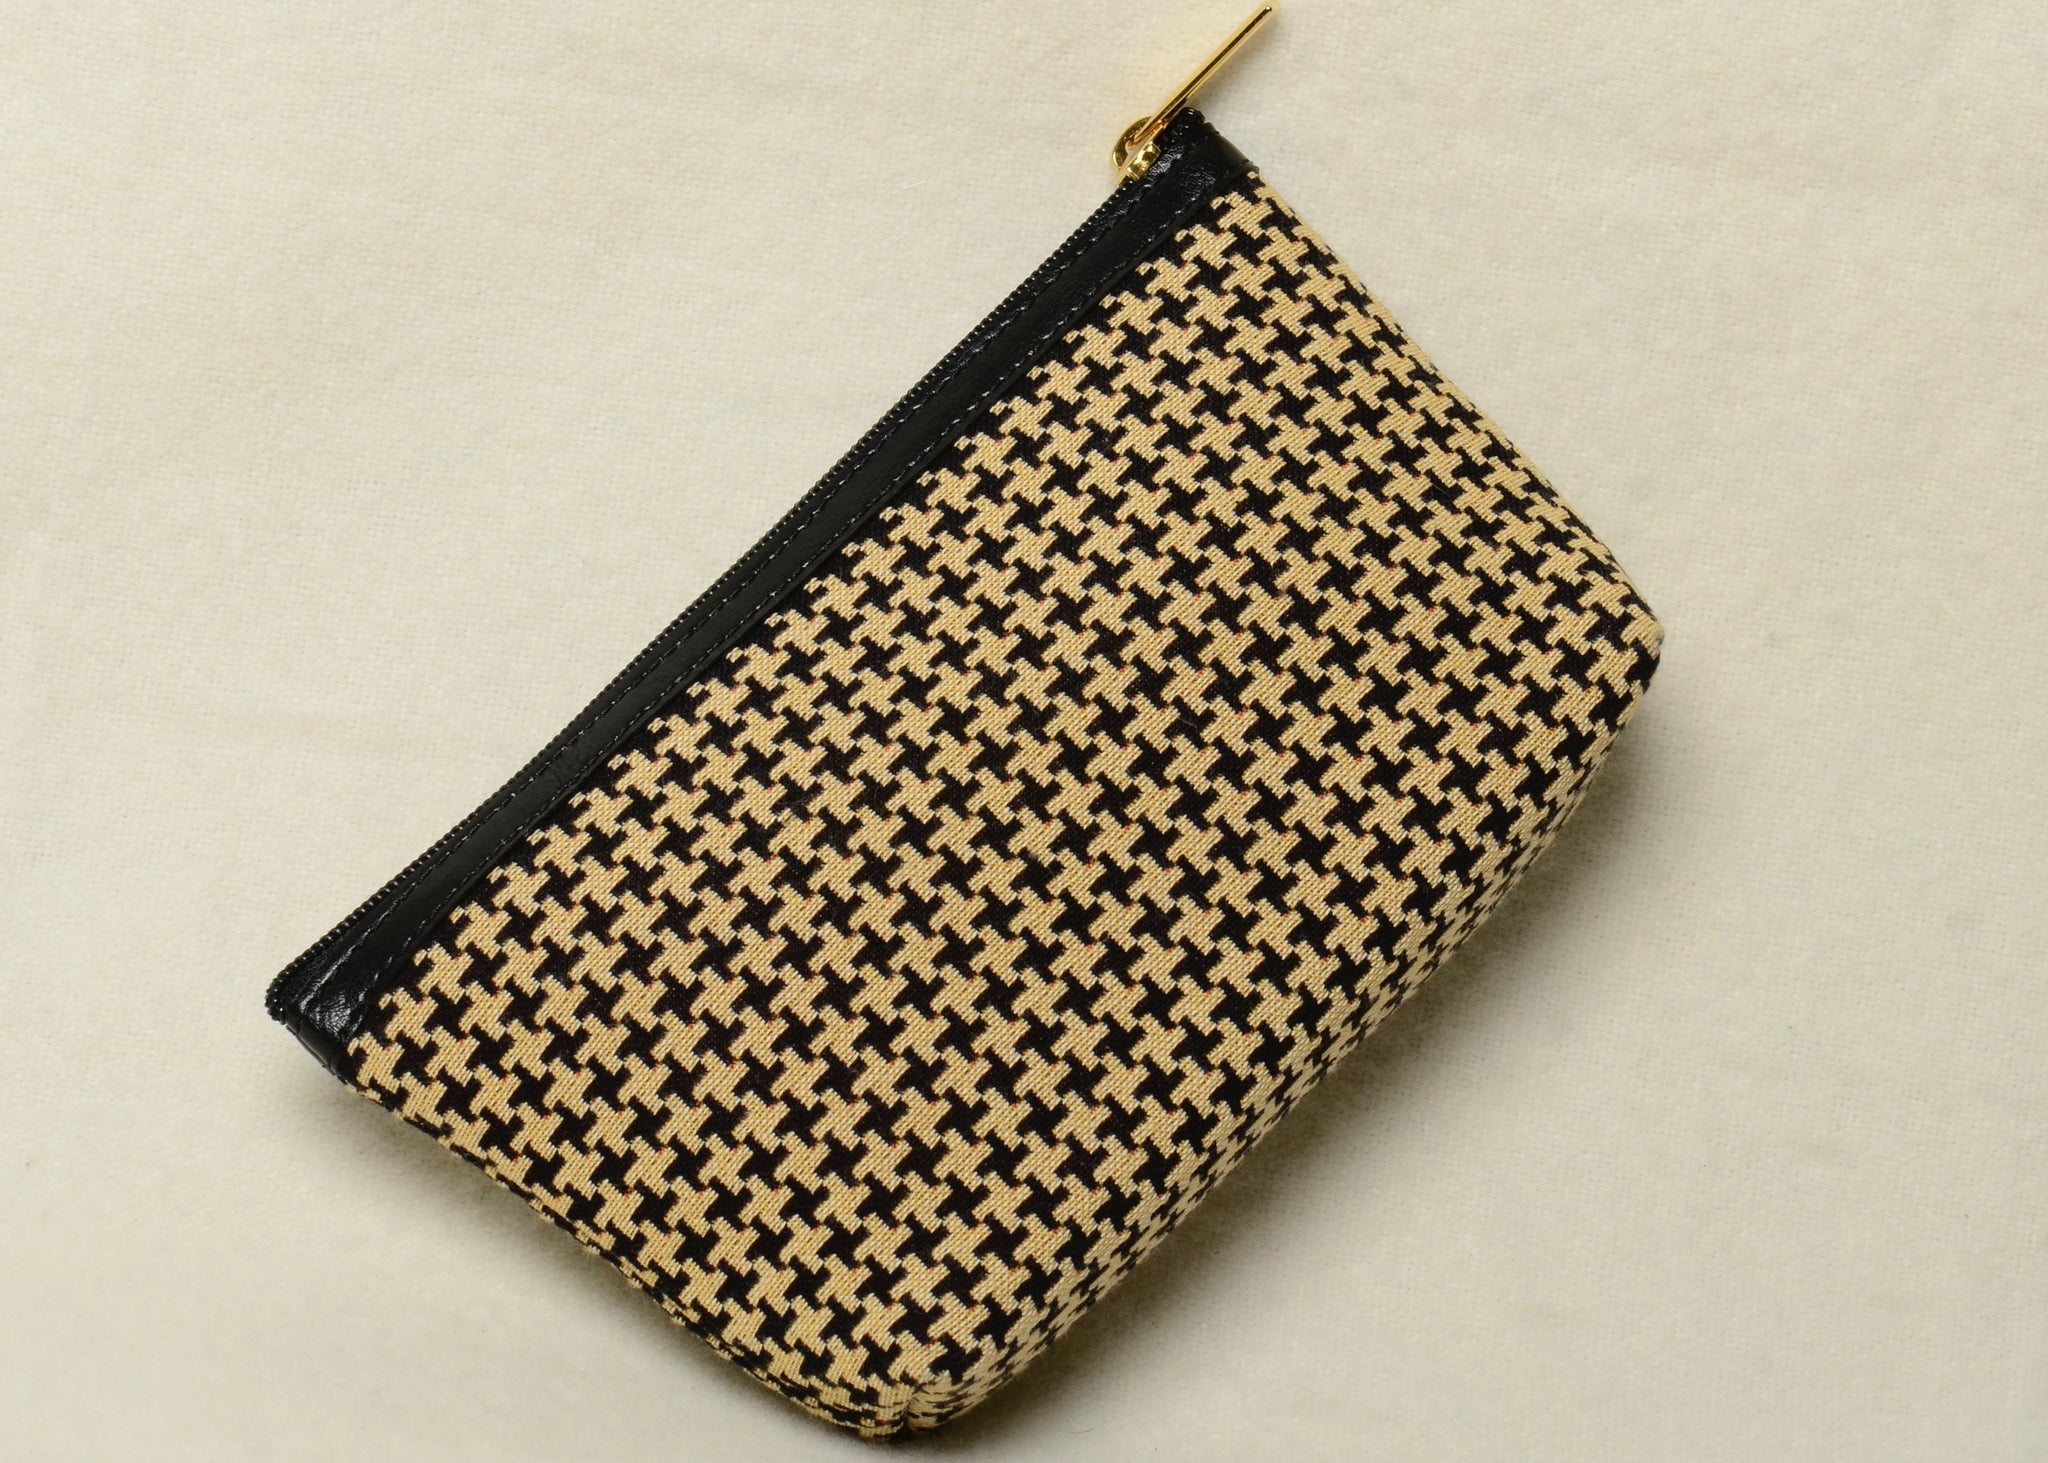 Belgian Tapestry Cosmetic Purse with Leather Accents in Houndstooth Motif